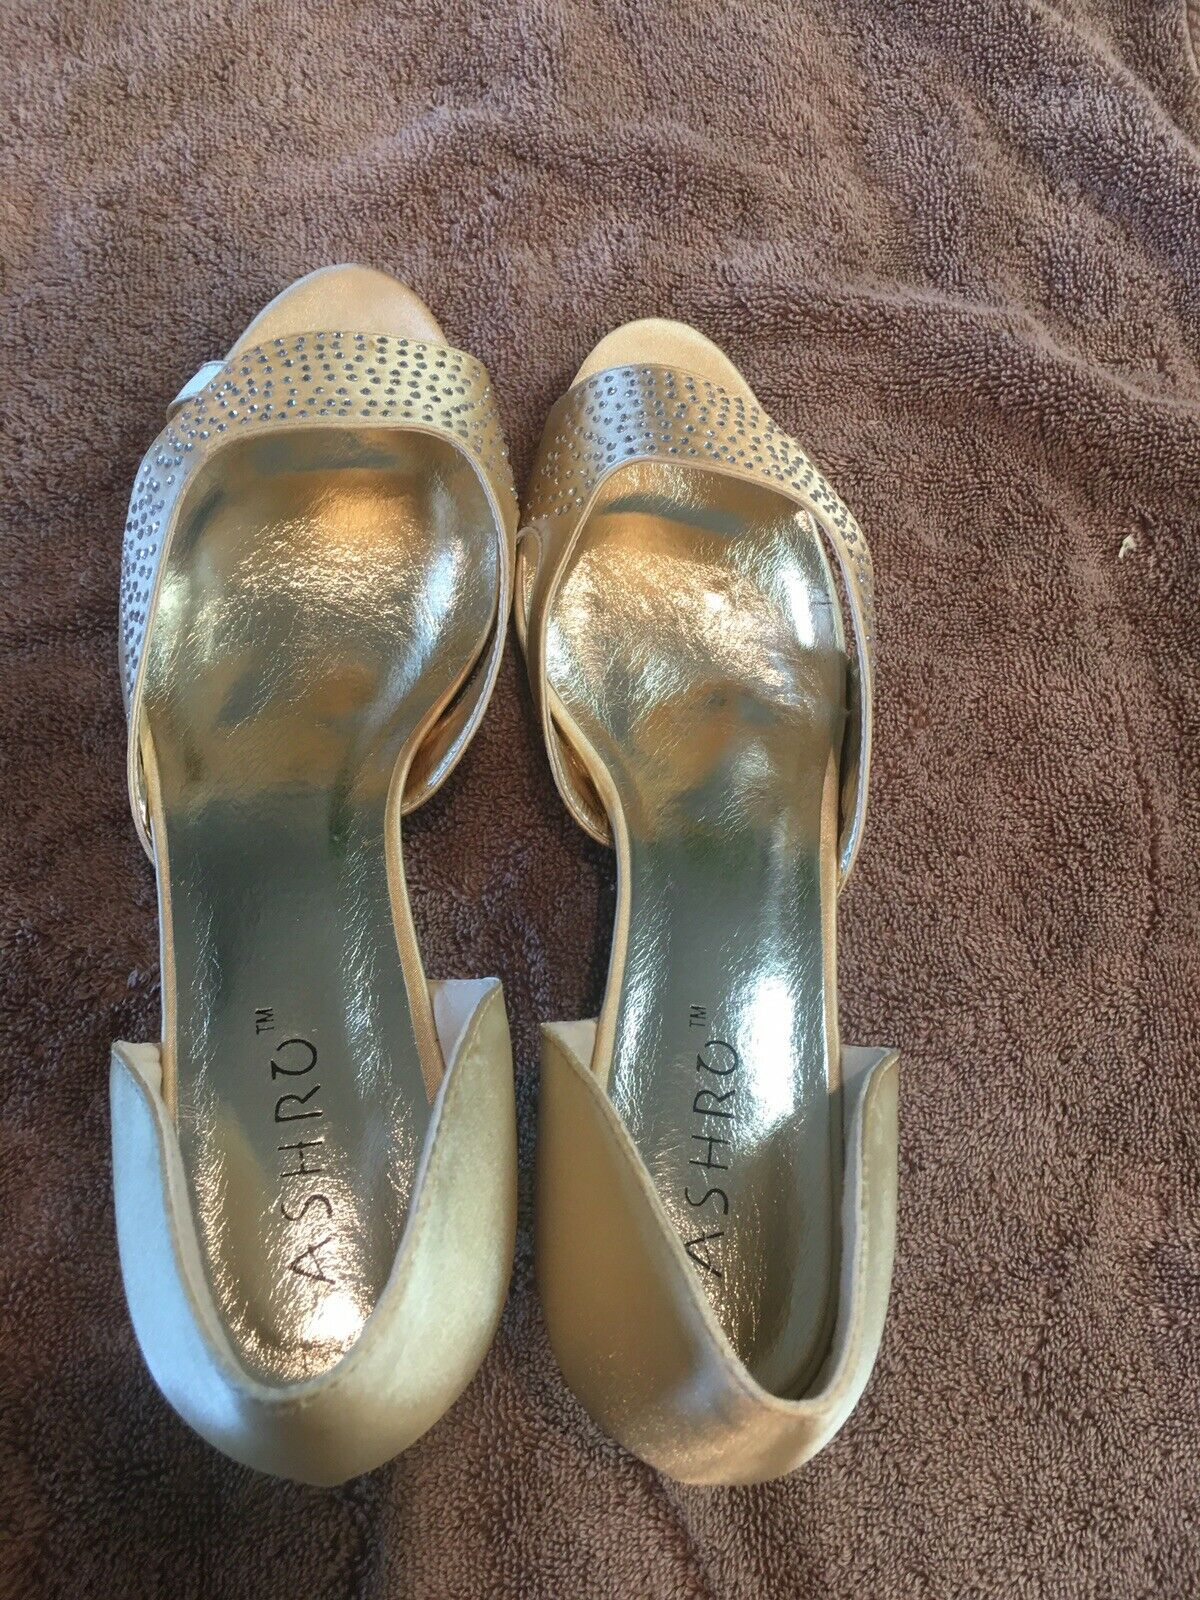 New Beautiful women soft gold pumps with Rhinestones On The Top,size10M,by Astro